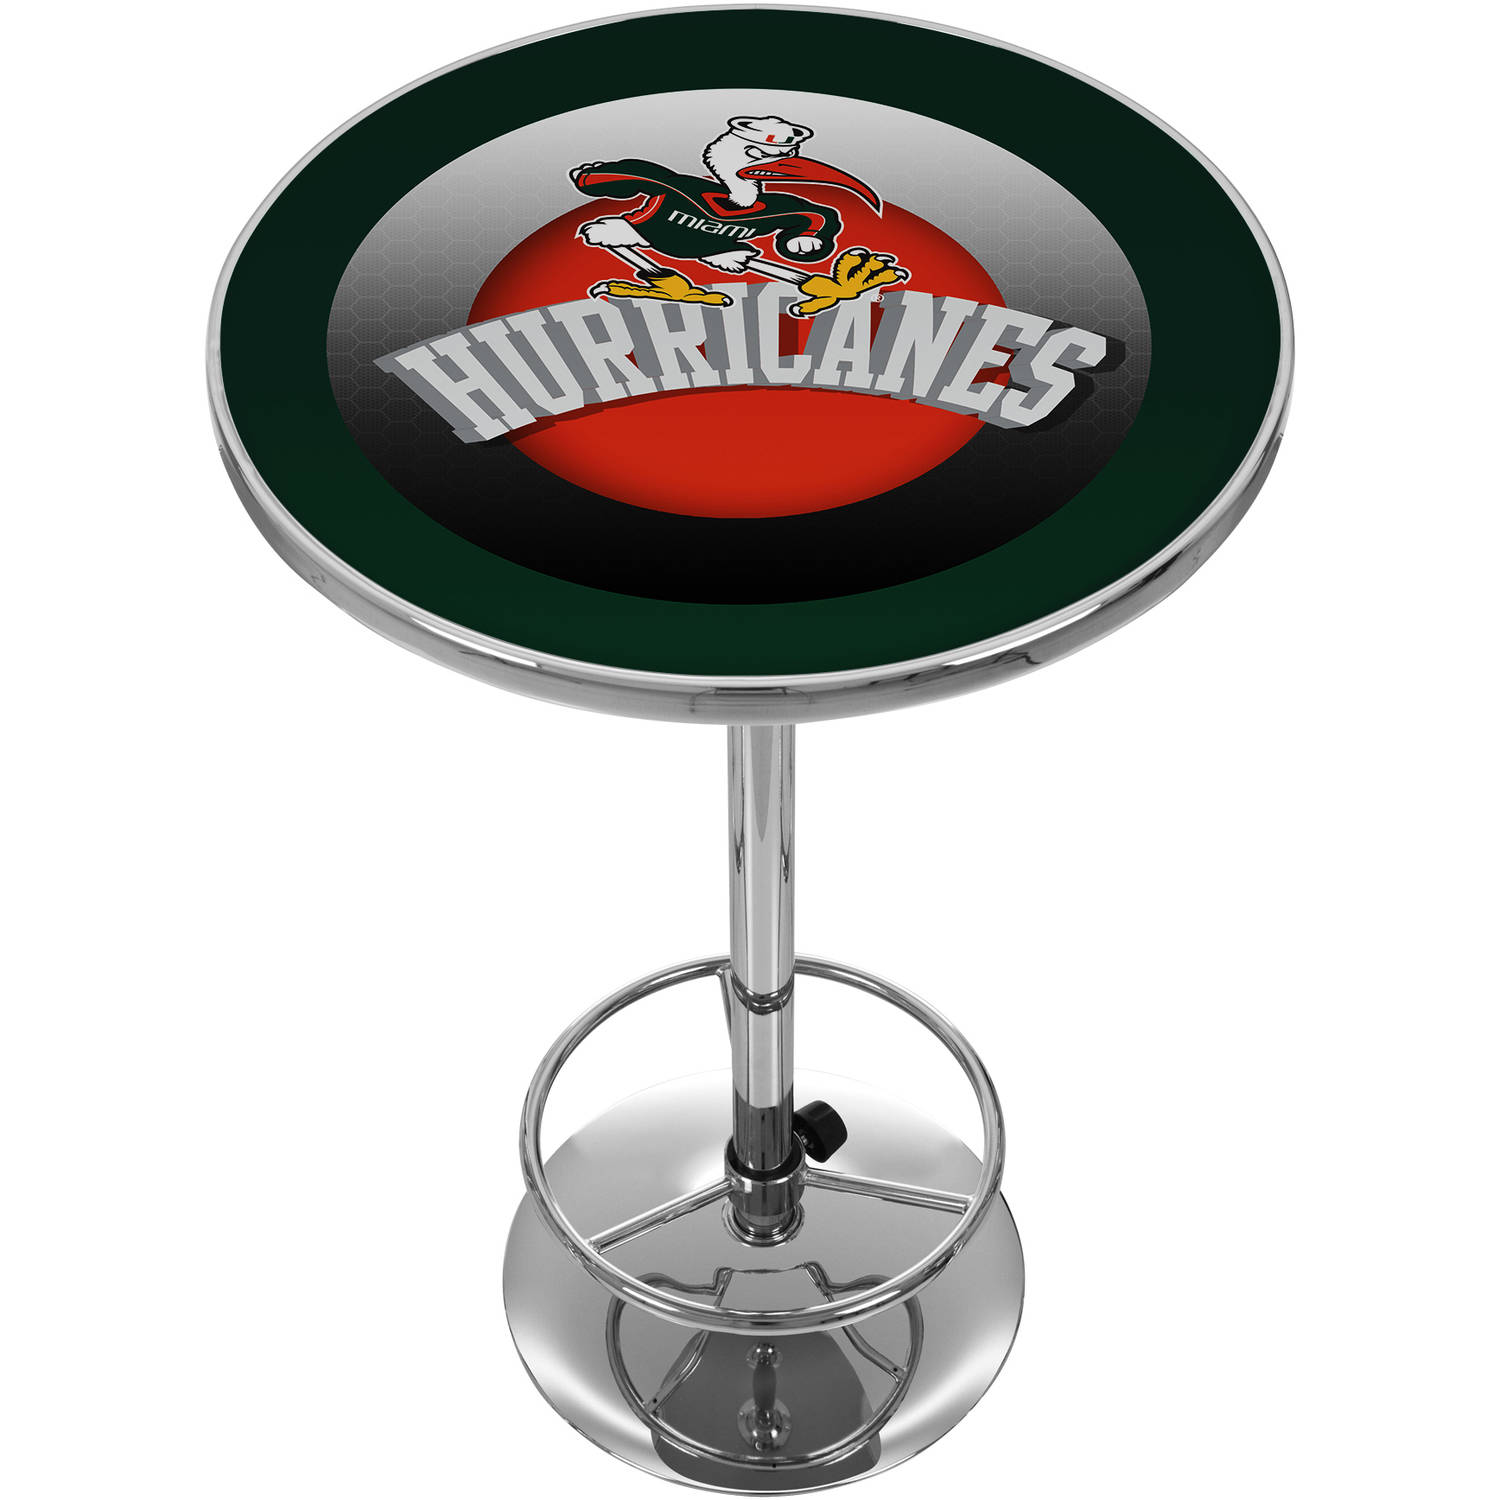 University of Miami Chrome Pub Table, Reaching Sebastian